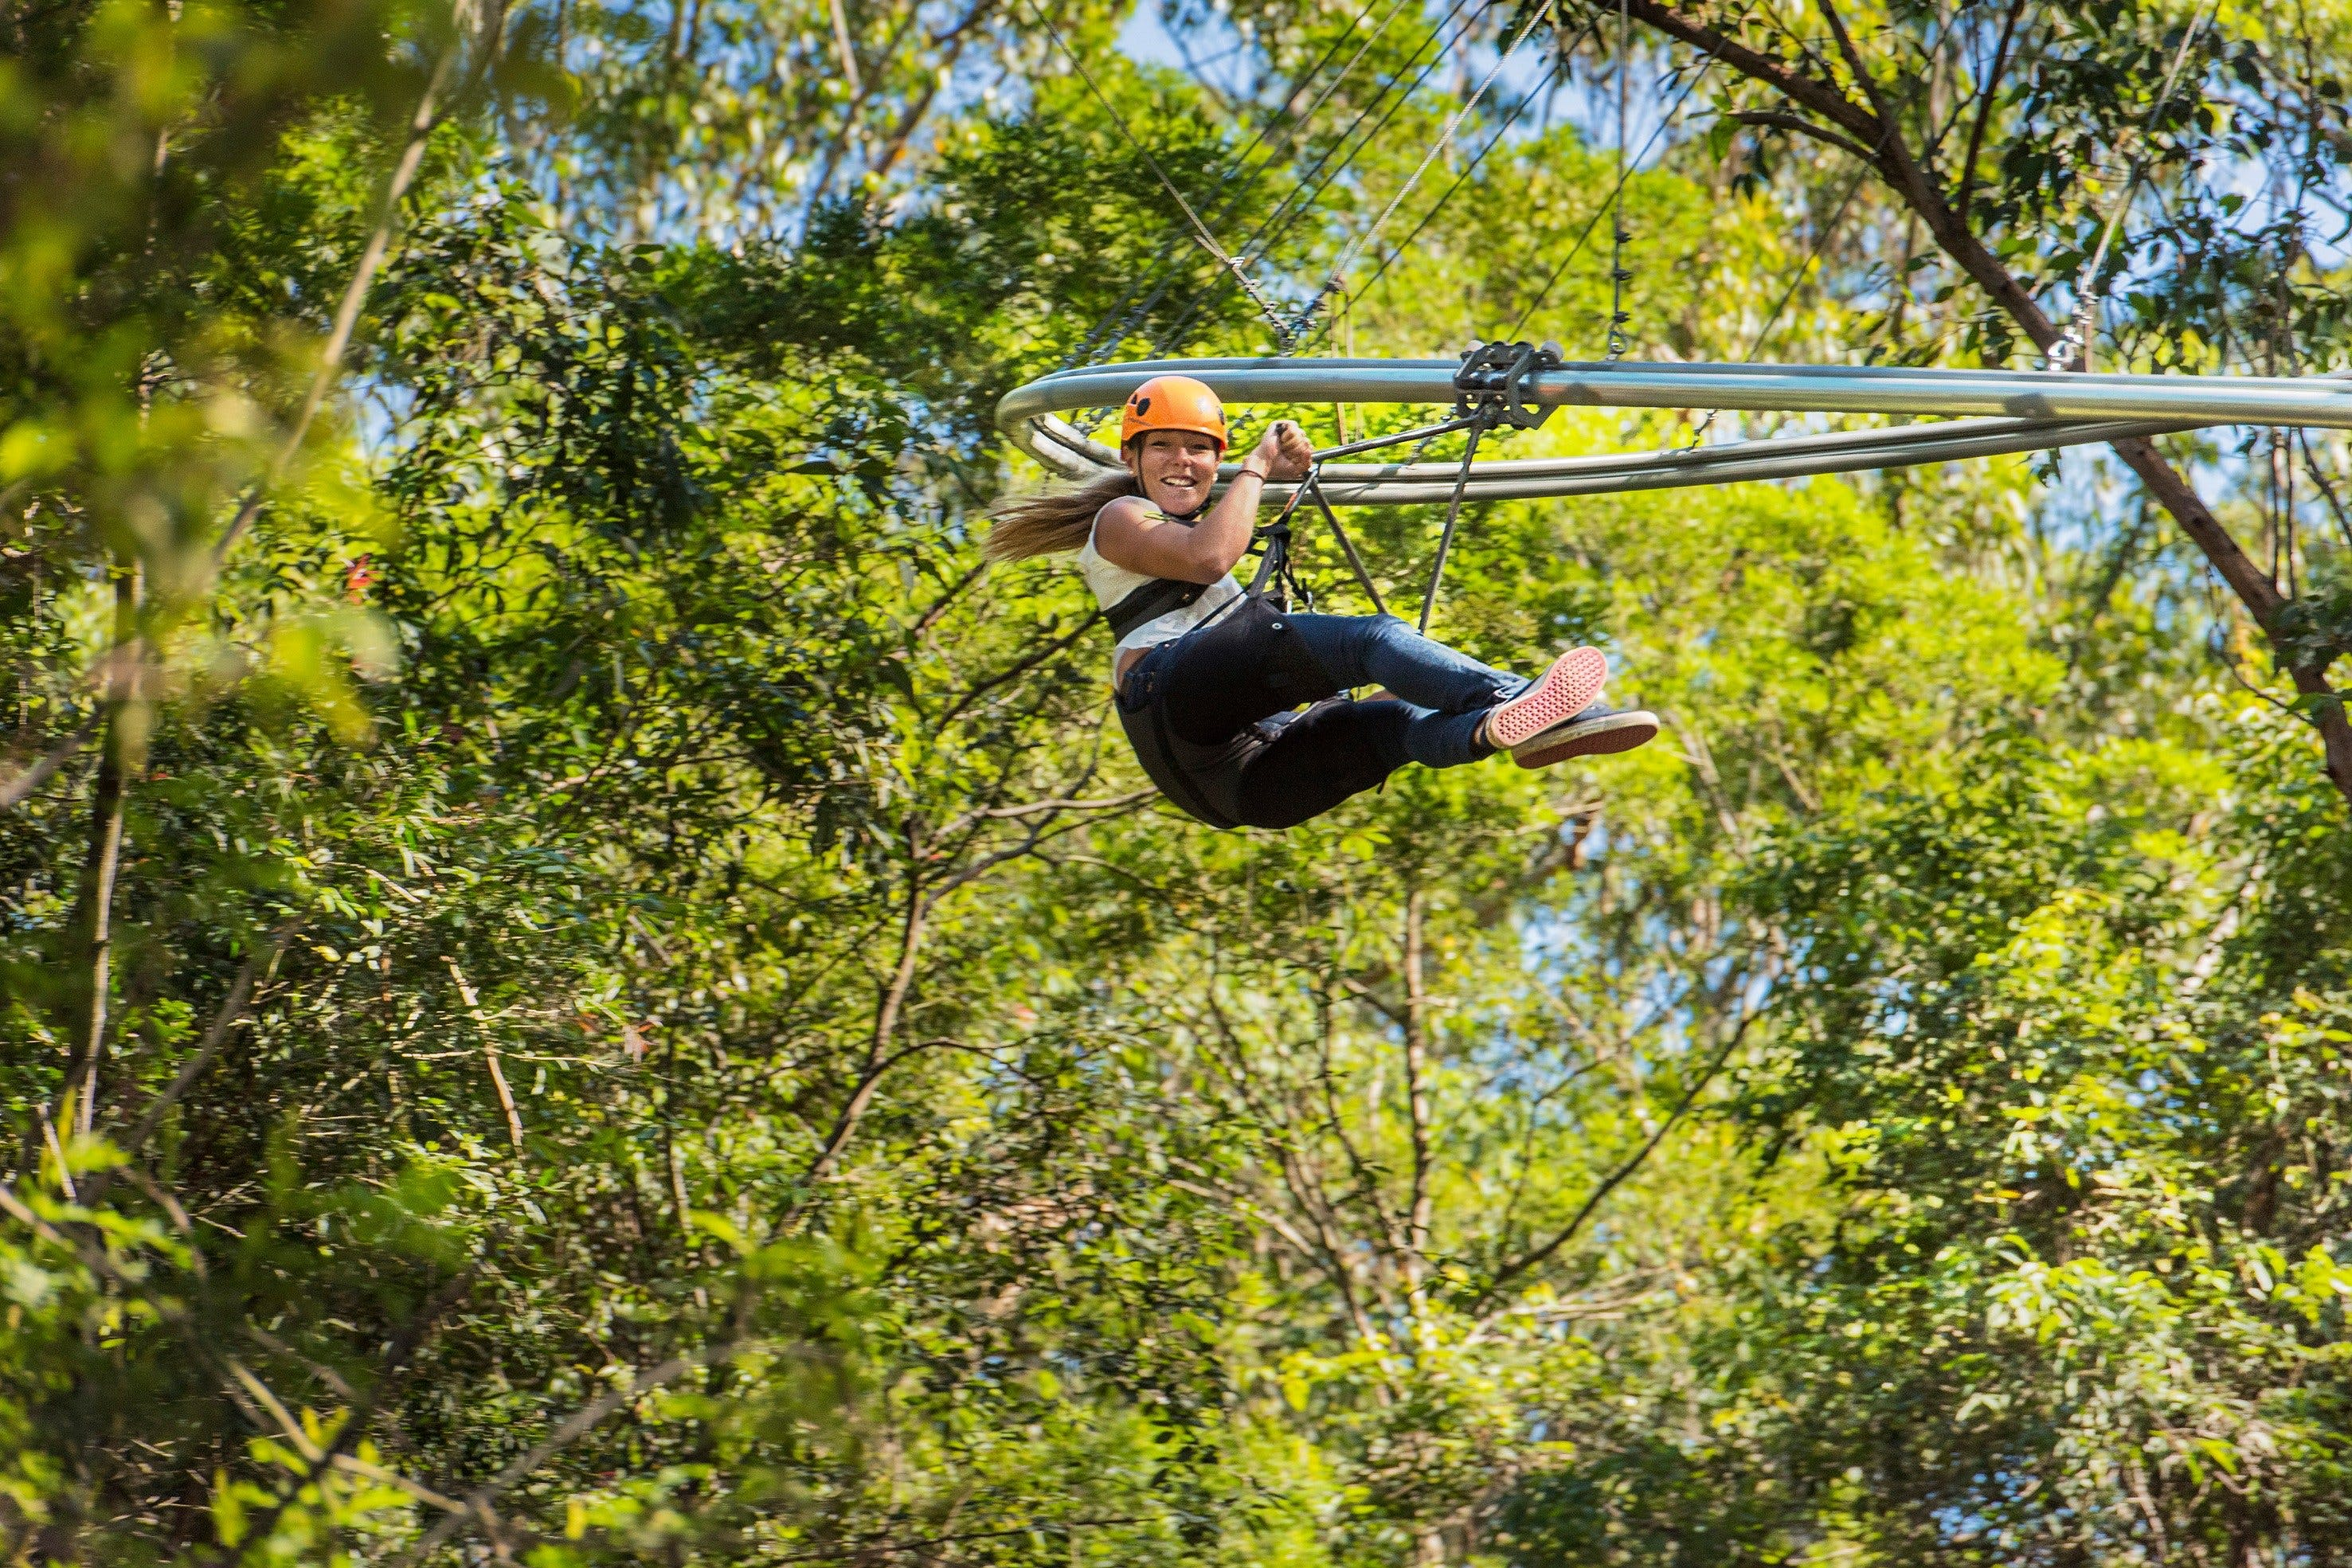 TreeTop Crazy Rider - Accommodation Search